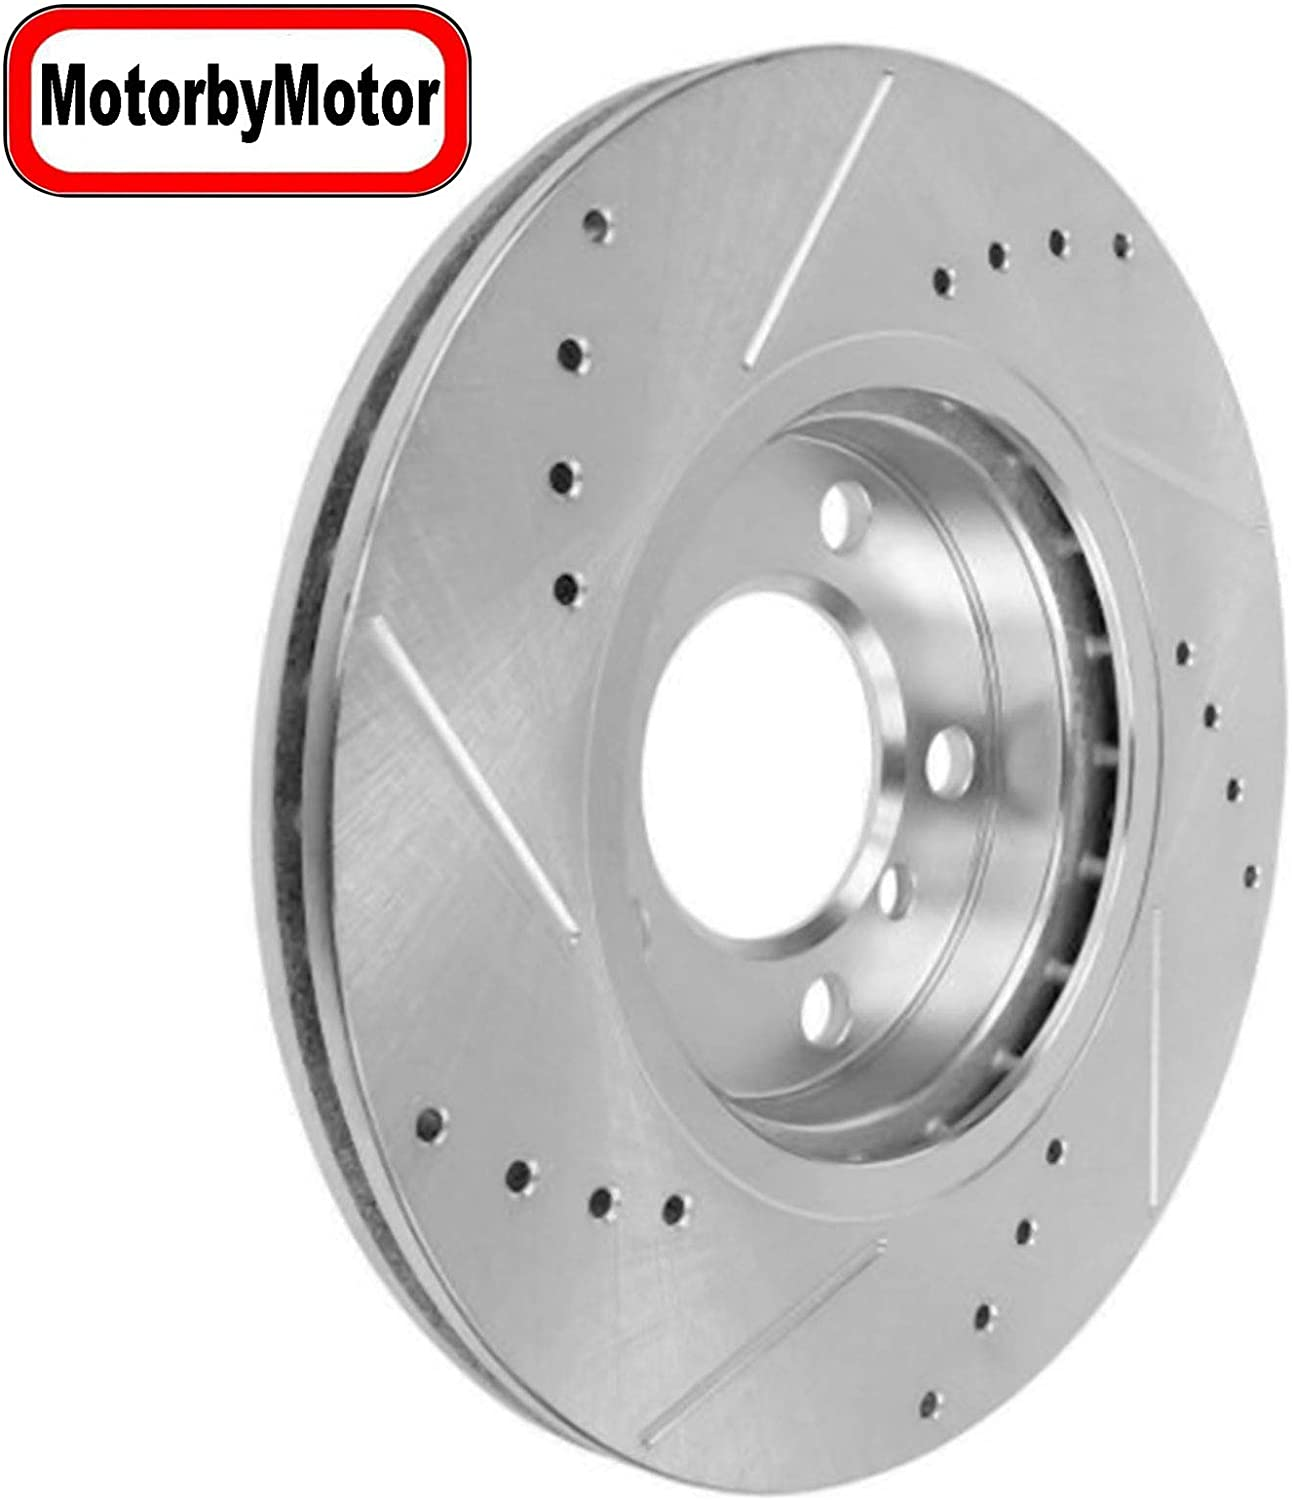 Front/Rear Drilled & Slotted Brake Rotors + Brake Ceramic Pads + Brake Cleaner Replacement for 2007-2009 Ford Edge, 2007 2008 Lincoln MKX